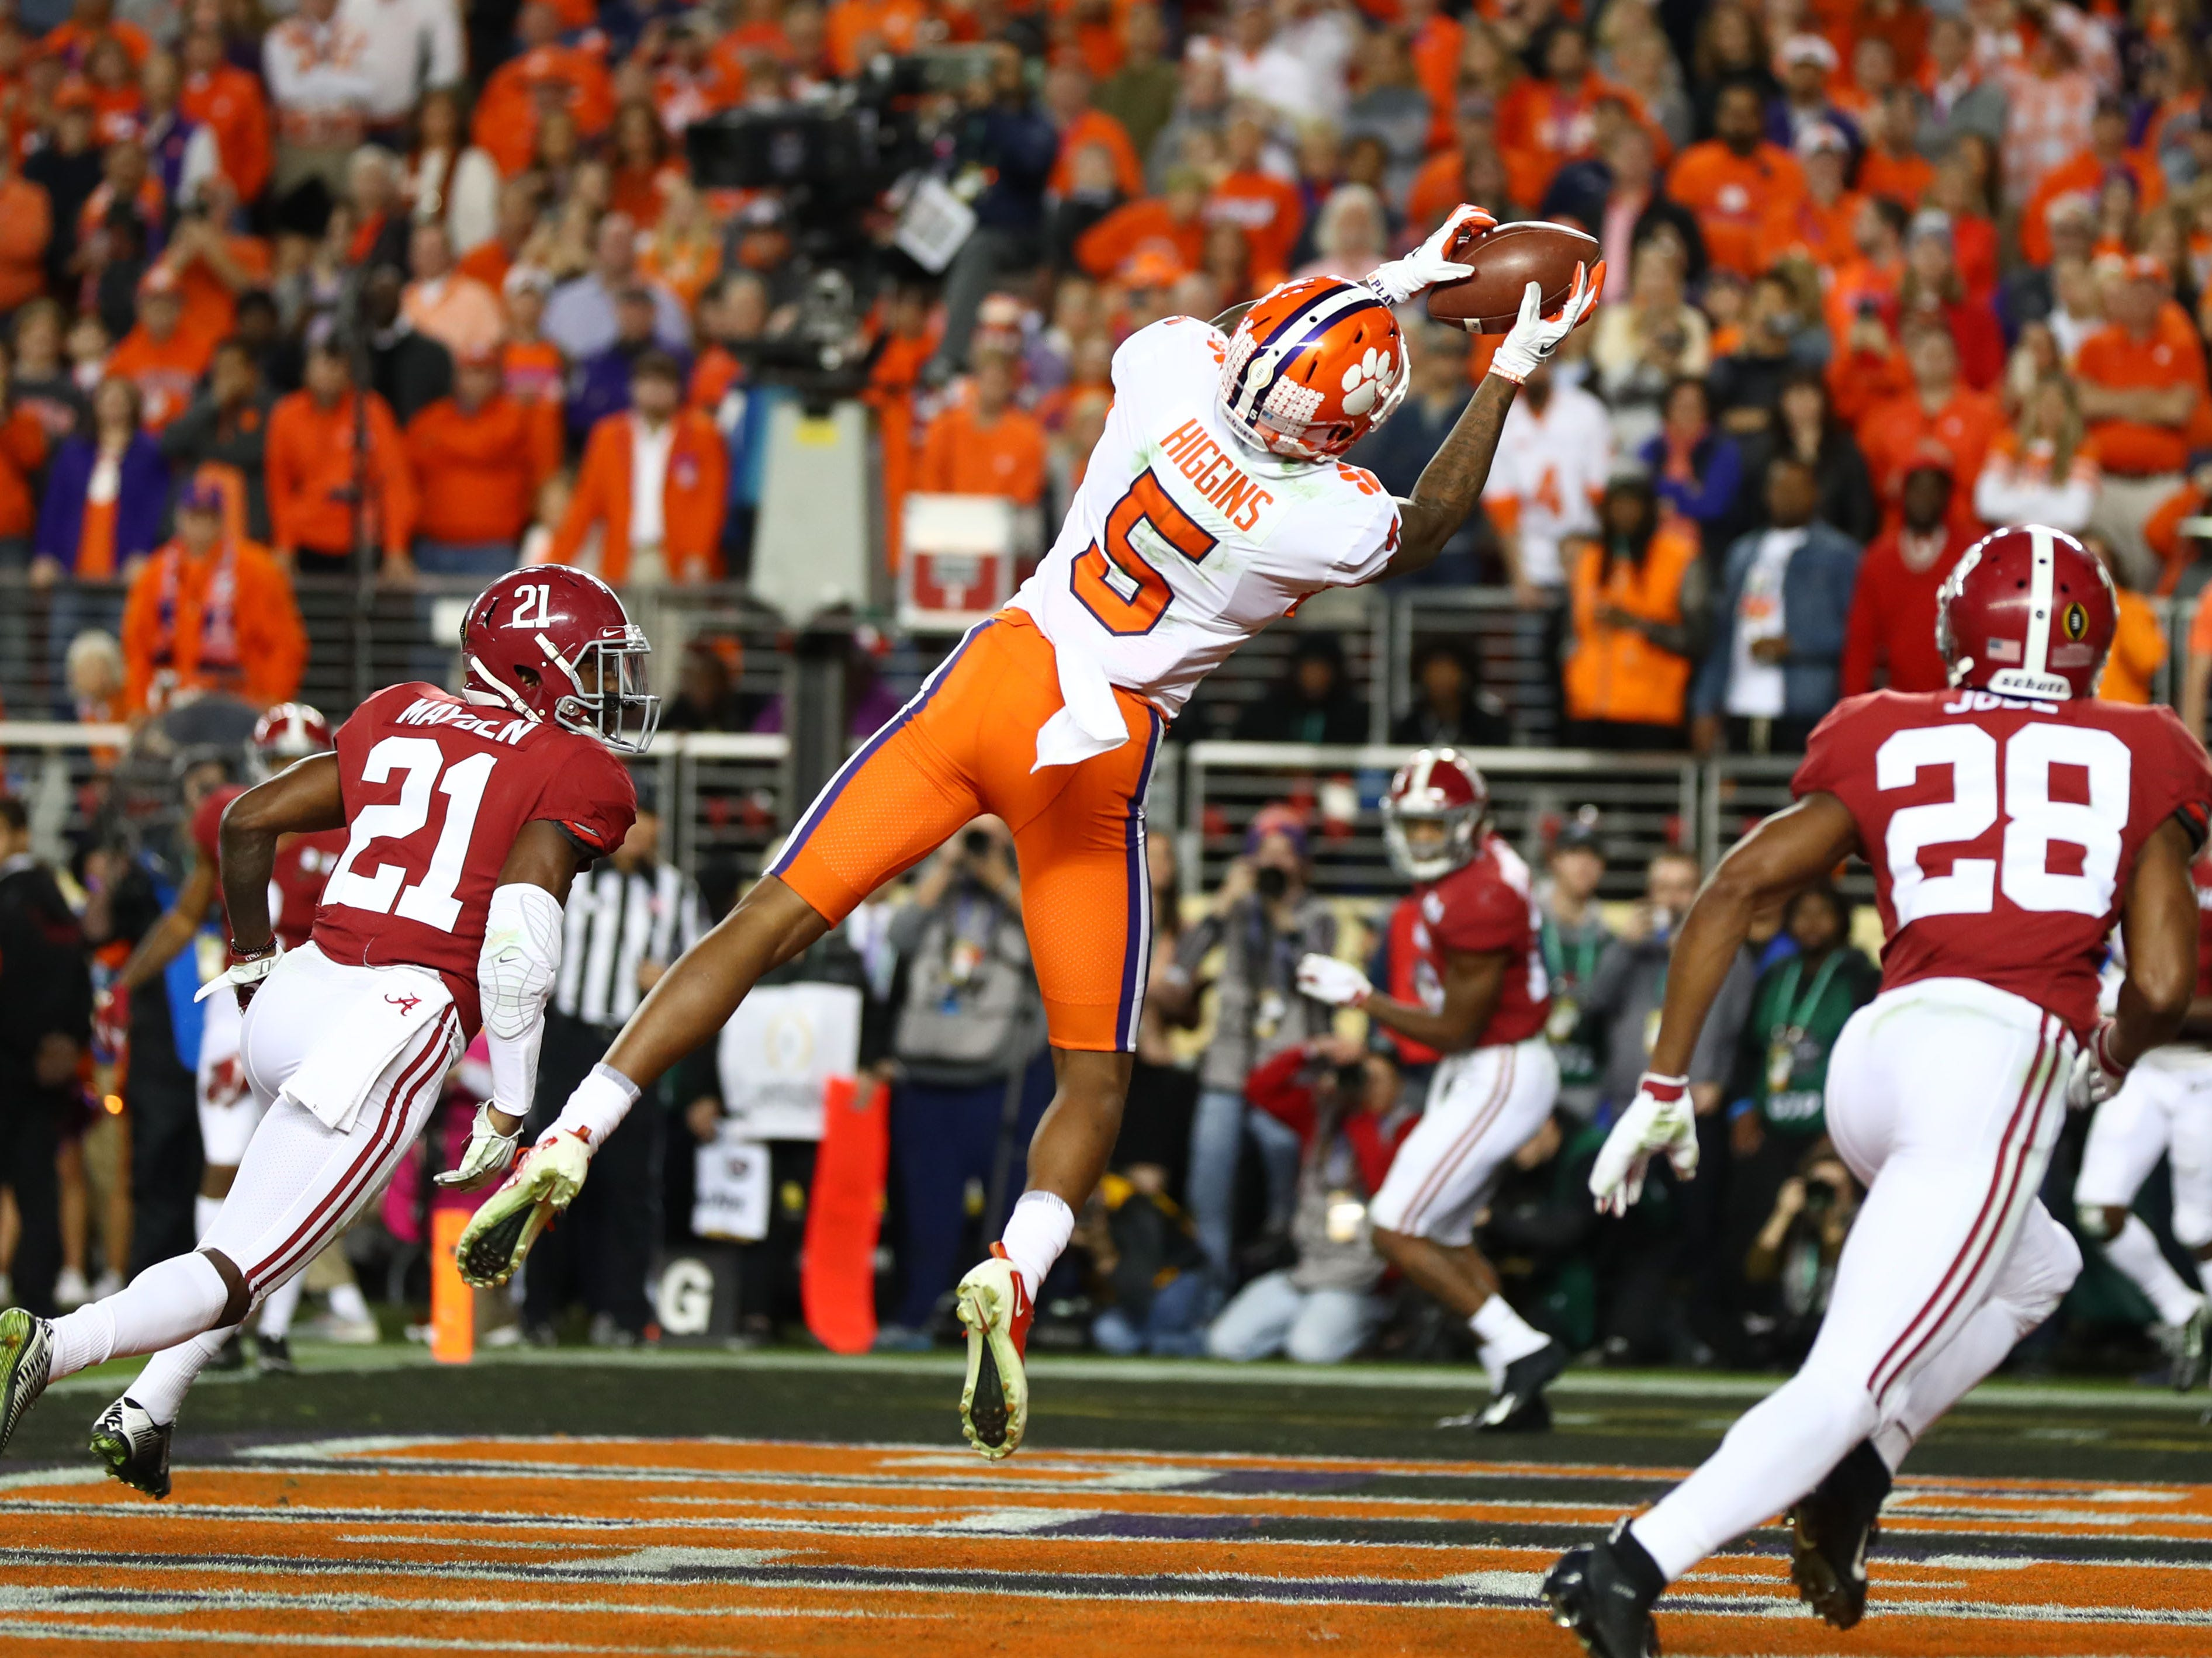 Clemson receiver Tee Higgins catches a touchdown pass in the third quarter.